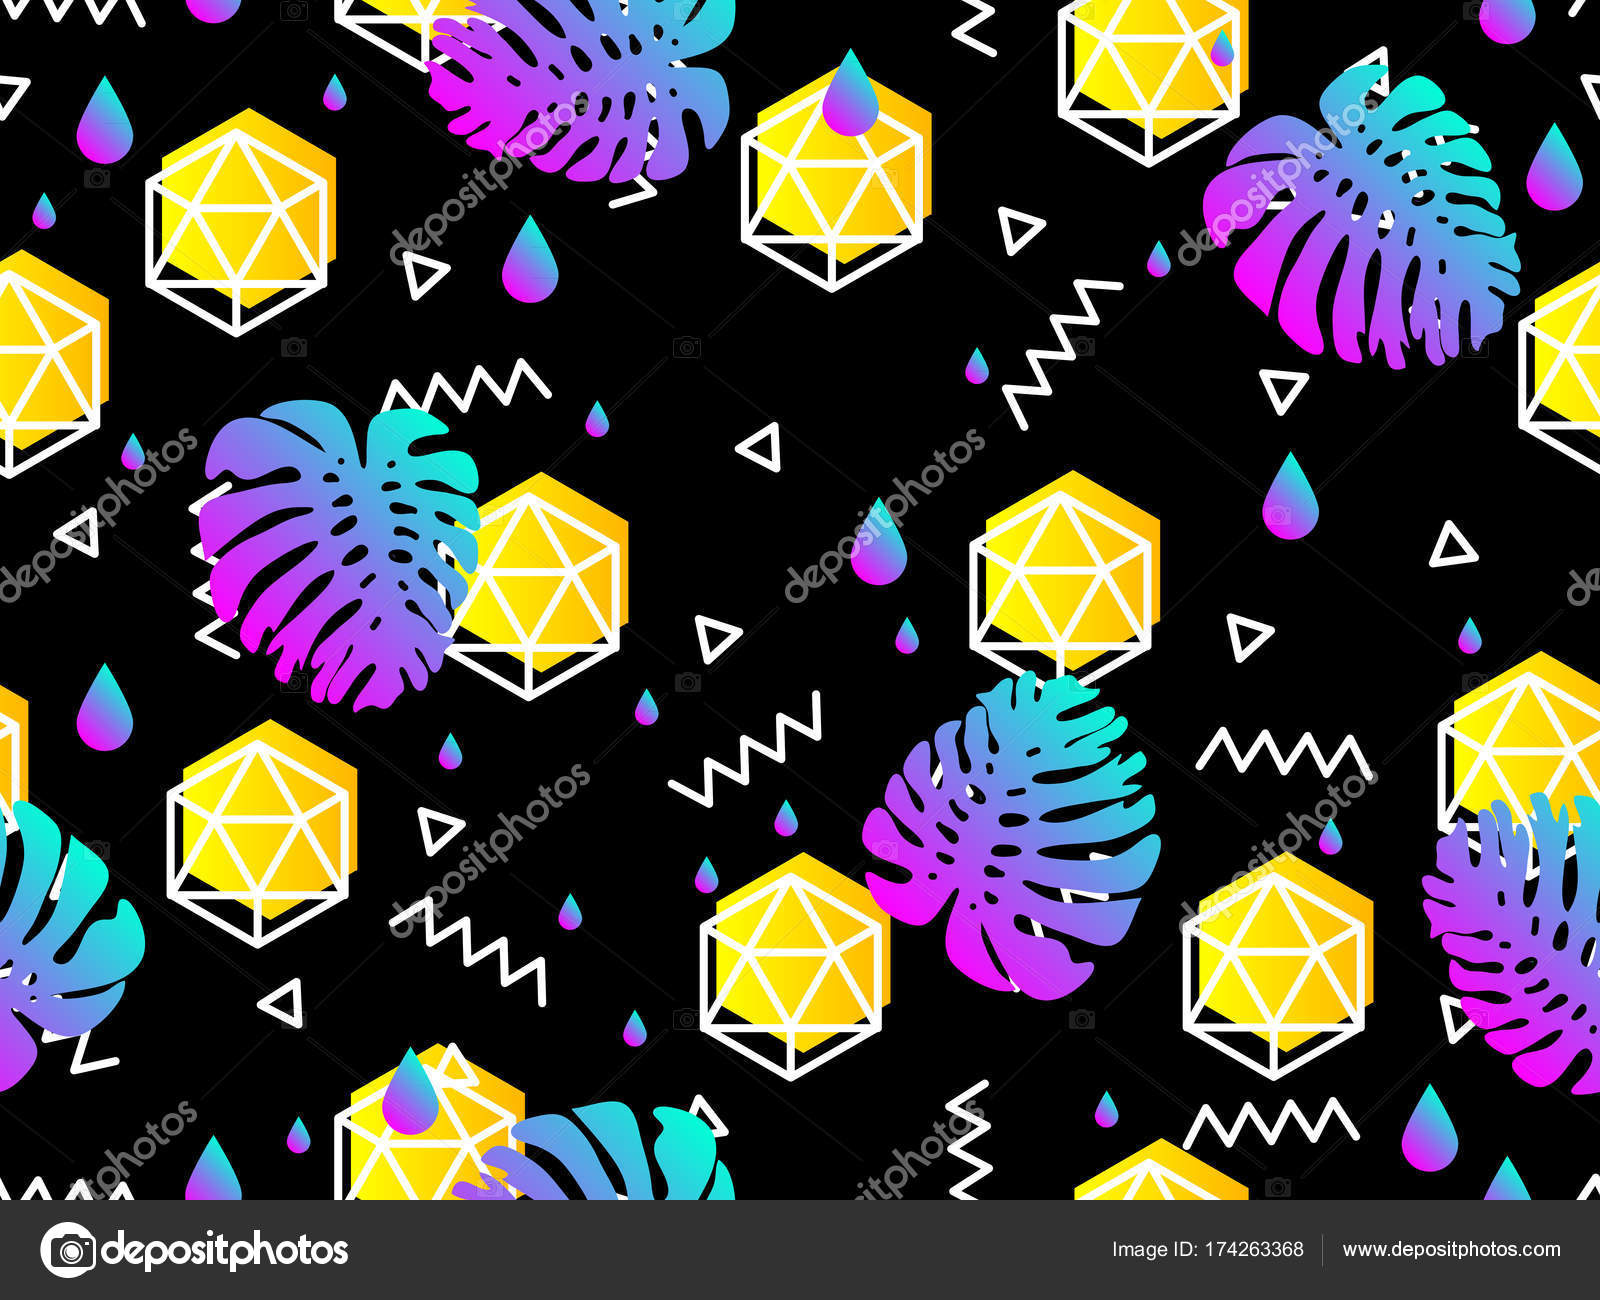 Wallpapers: 80s | Seamless geometric pattern in retro 80s